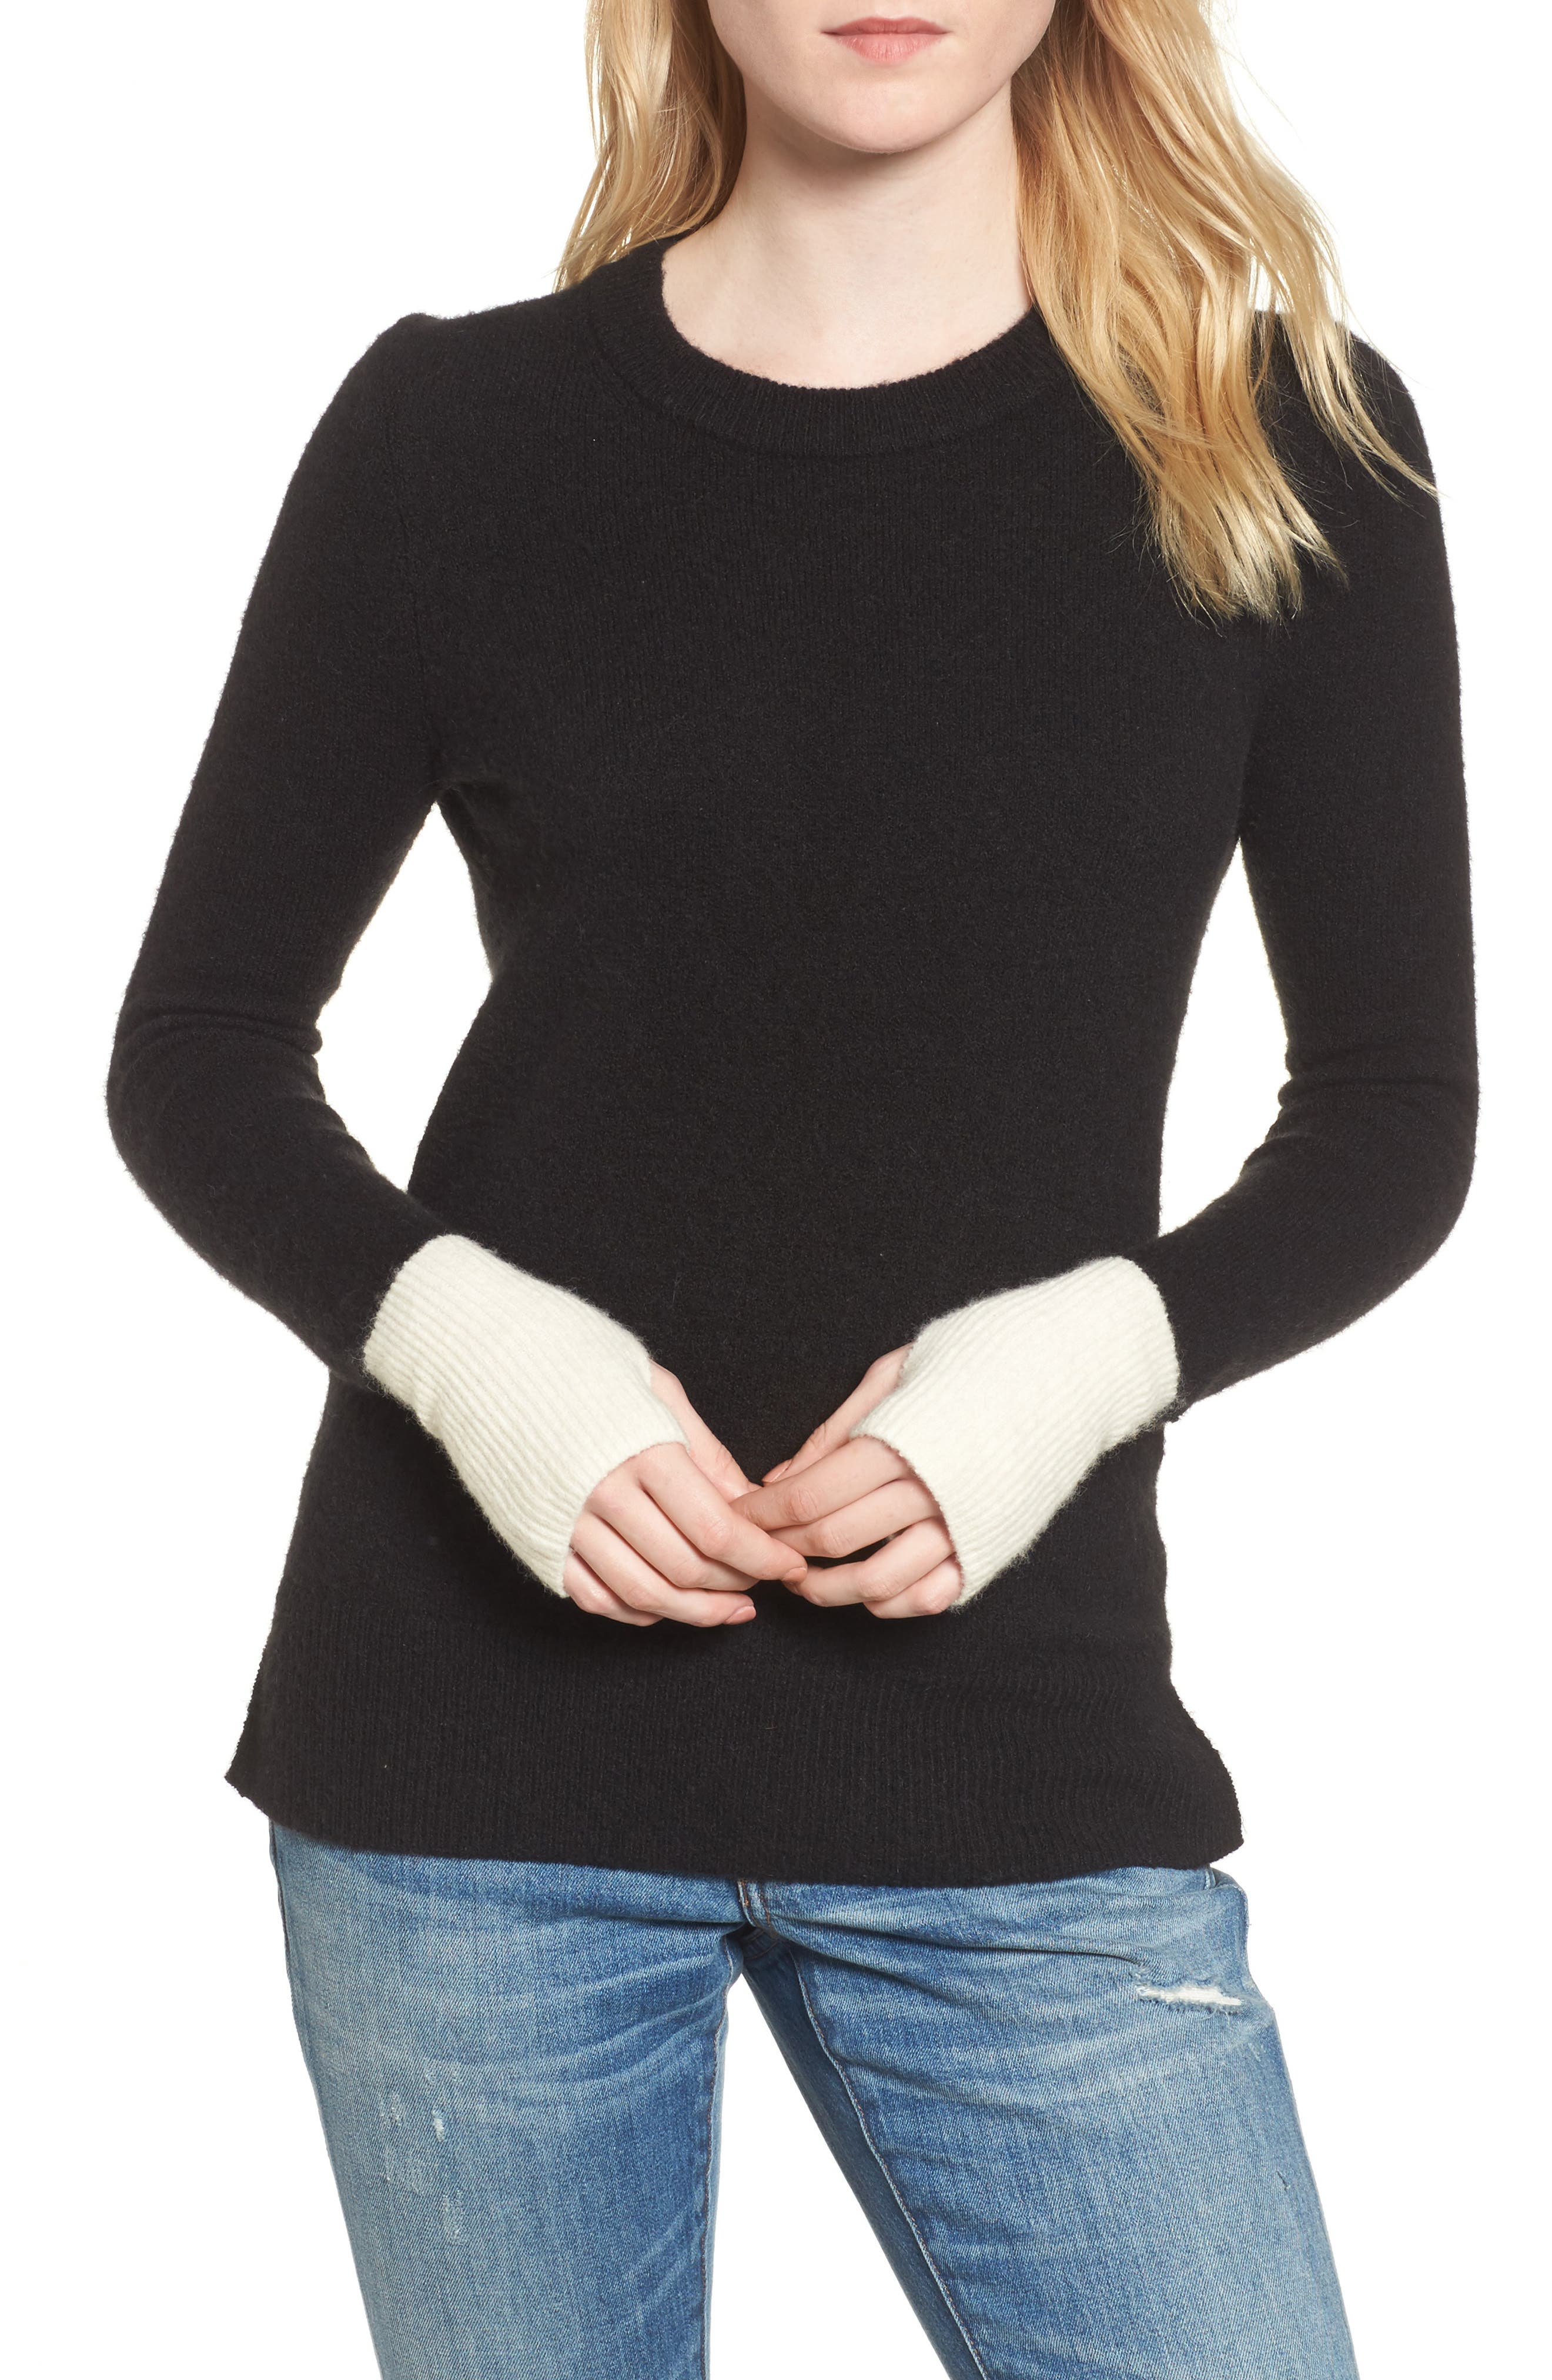 Main Image - Madewell Fremont Colorblock Pullover Sweater